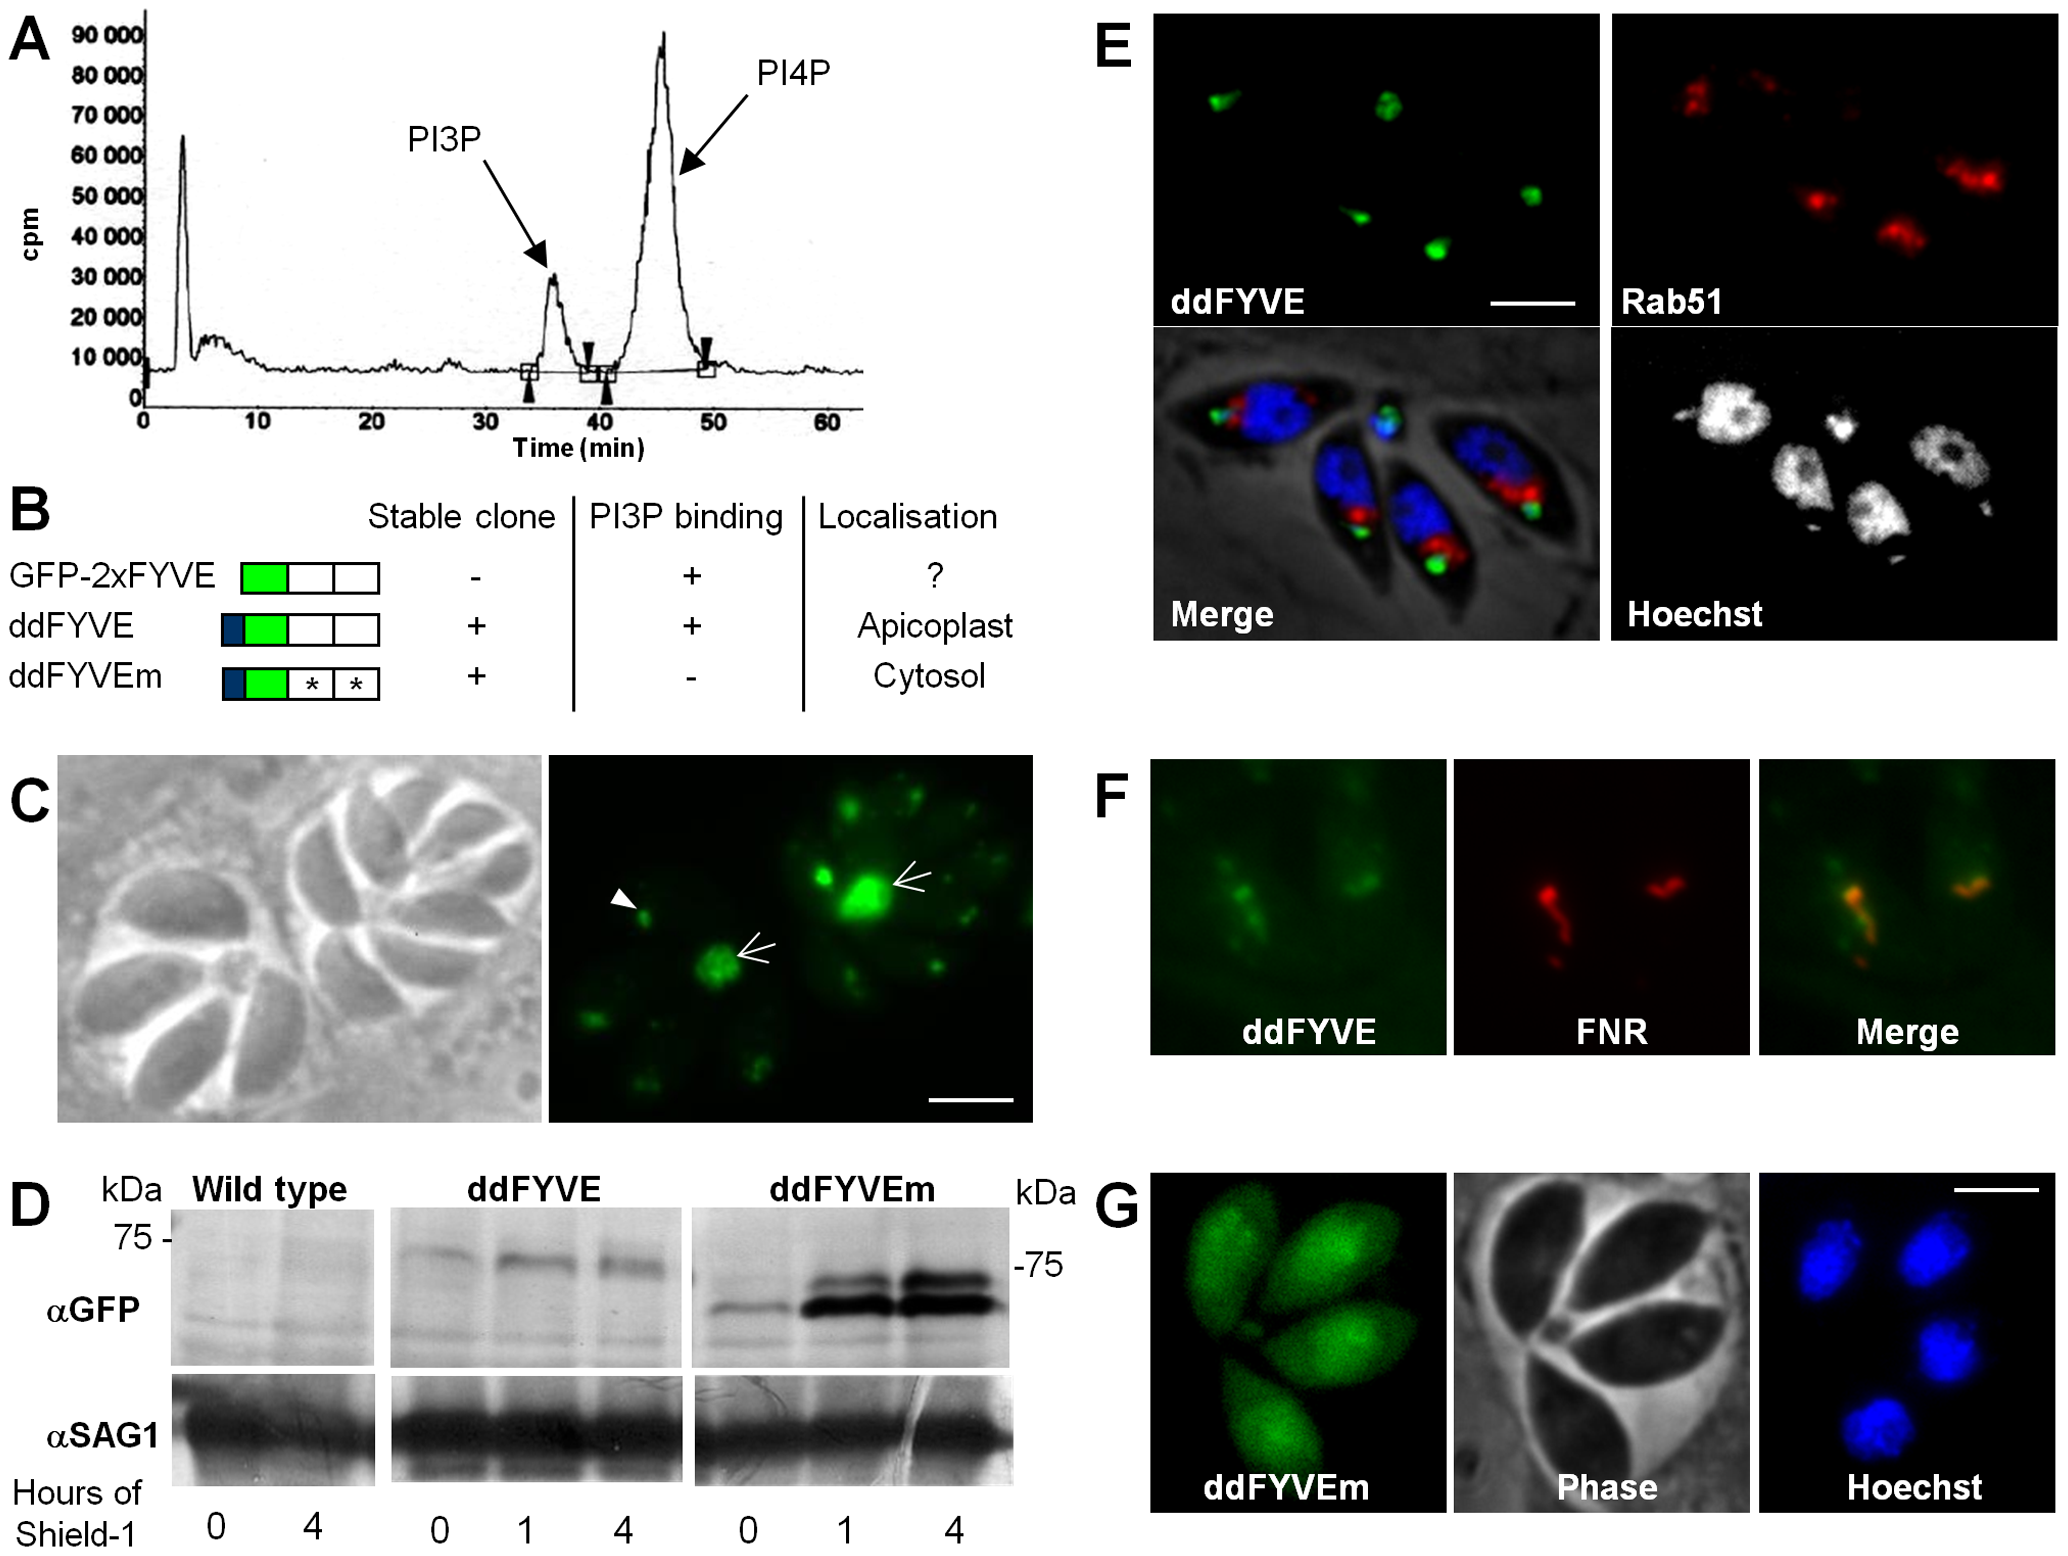 Expression and localization of PI3P in <i>T. gondii</i>.